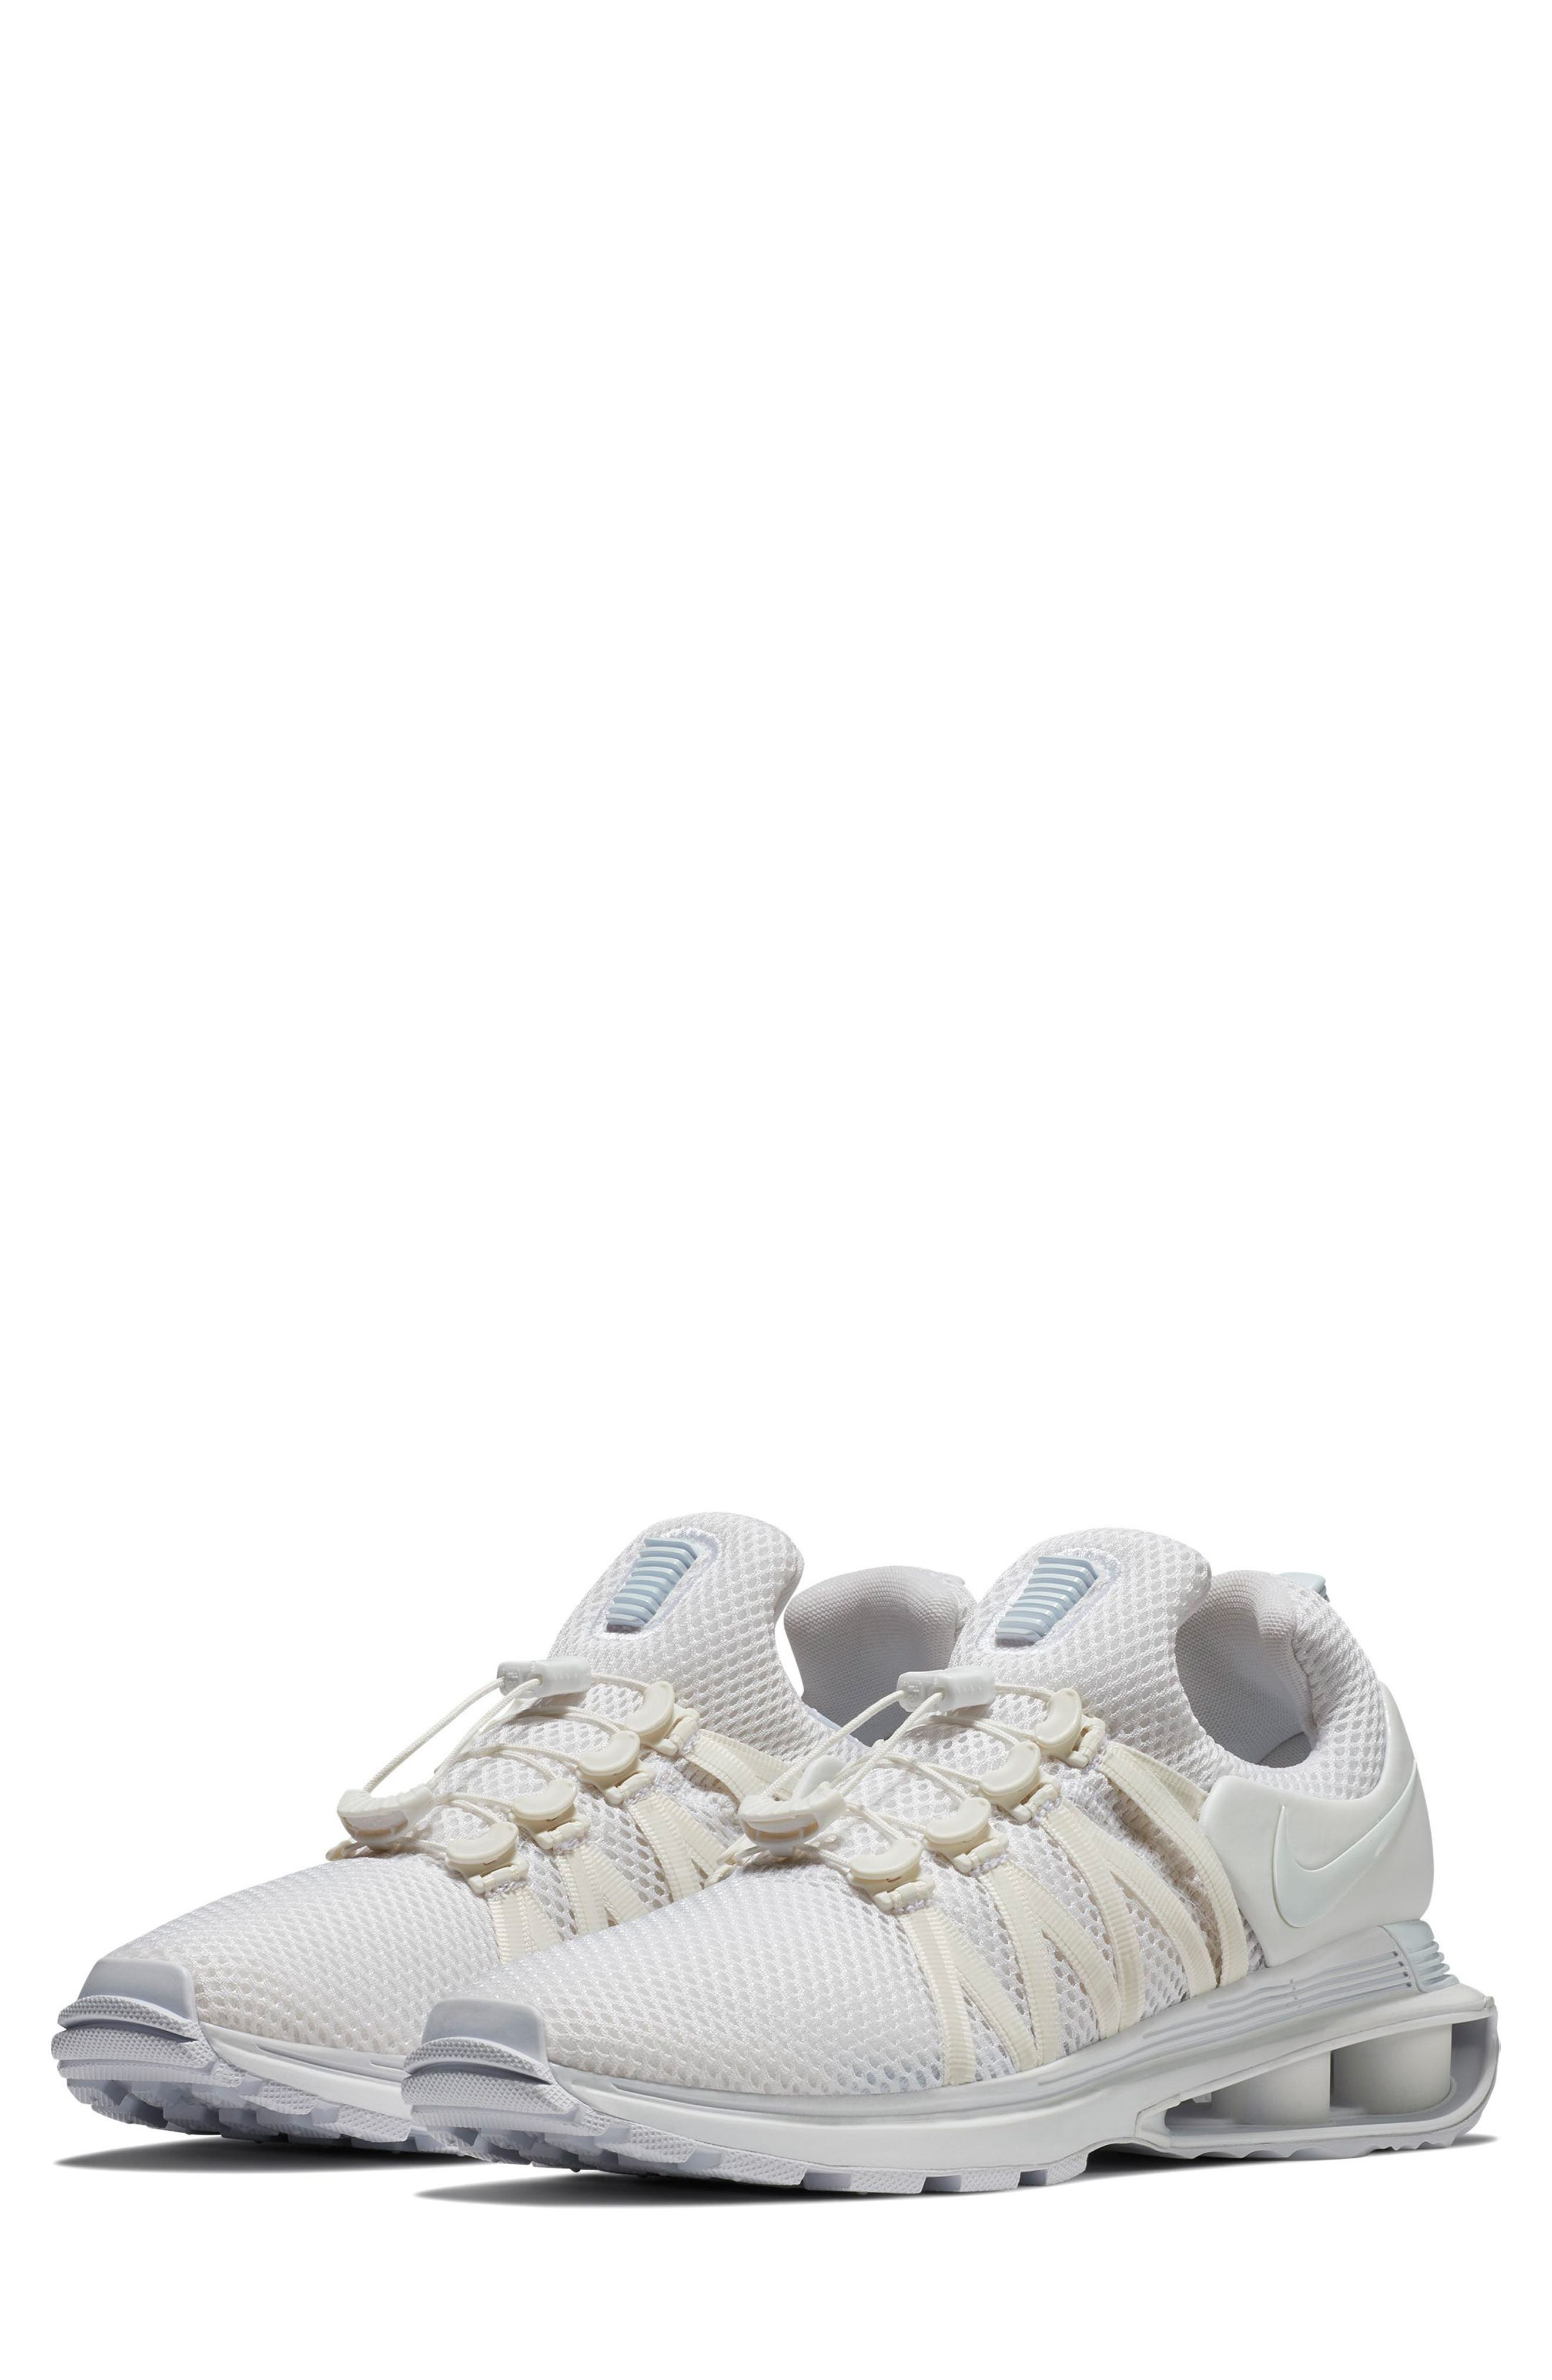 Shox Gravity Sneaker,                         Main,                         color, 100